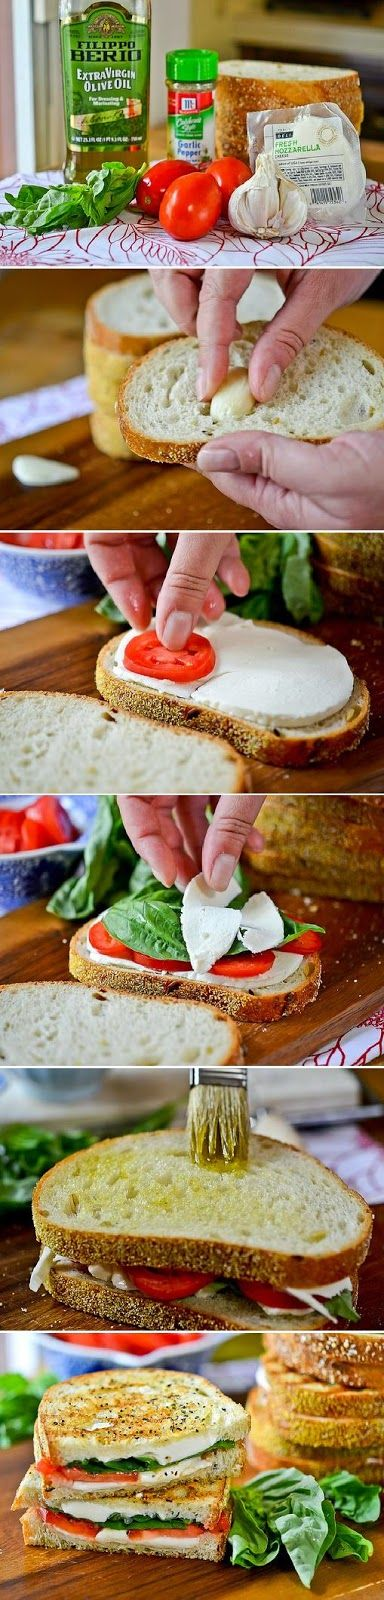 Food & Drink: Grilled Margherita Sandwiches